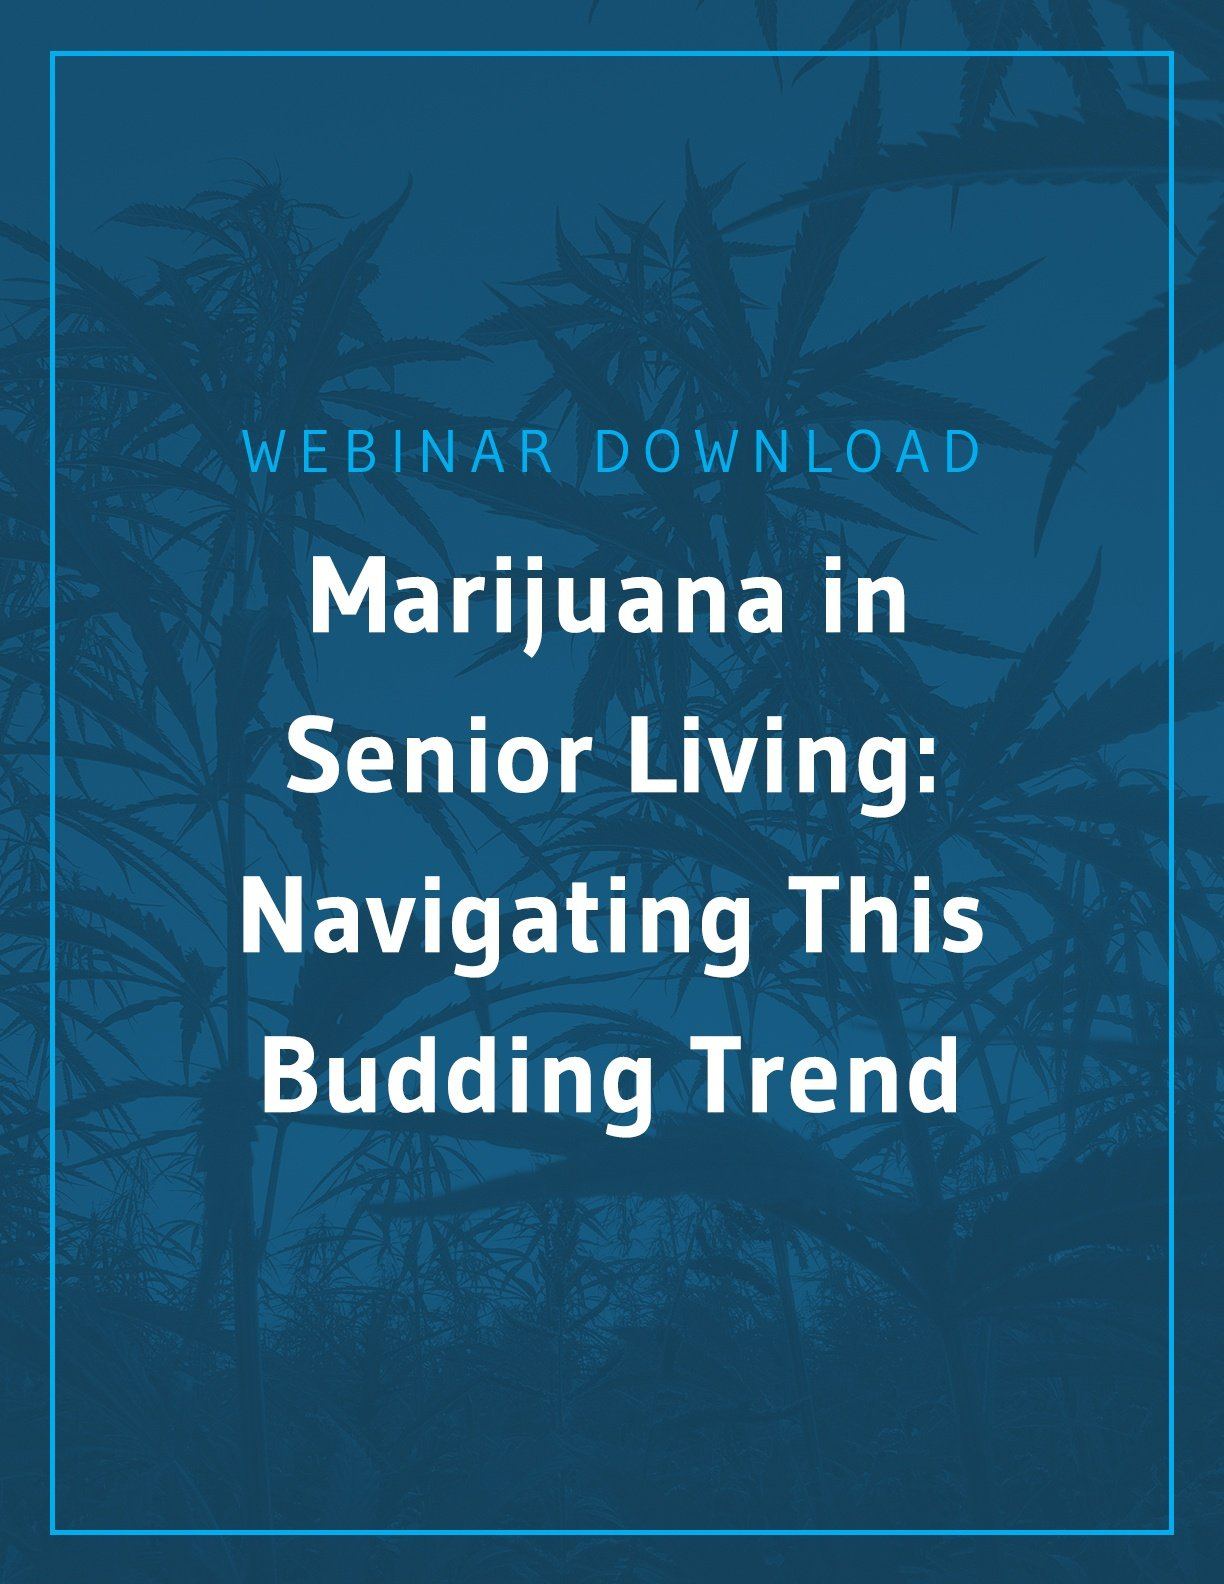 Marijuana in Senior Living: Navigating this Budding Trend